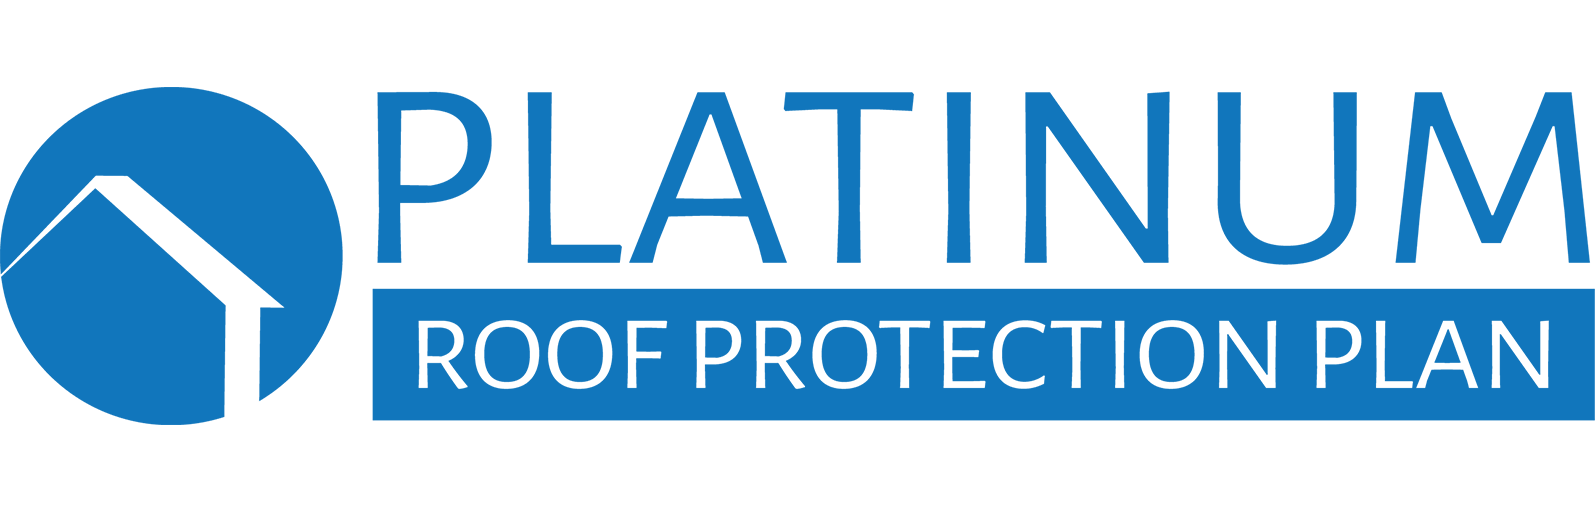 Our Platinum Roof Protection Plan offers protection against roof leaks for 5 full years after the inspection.